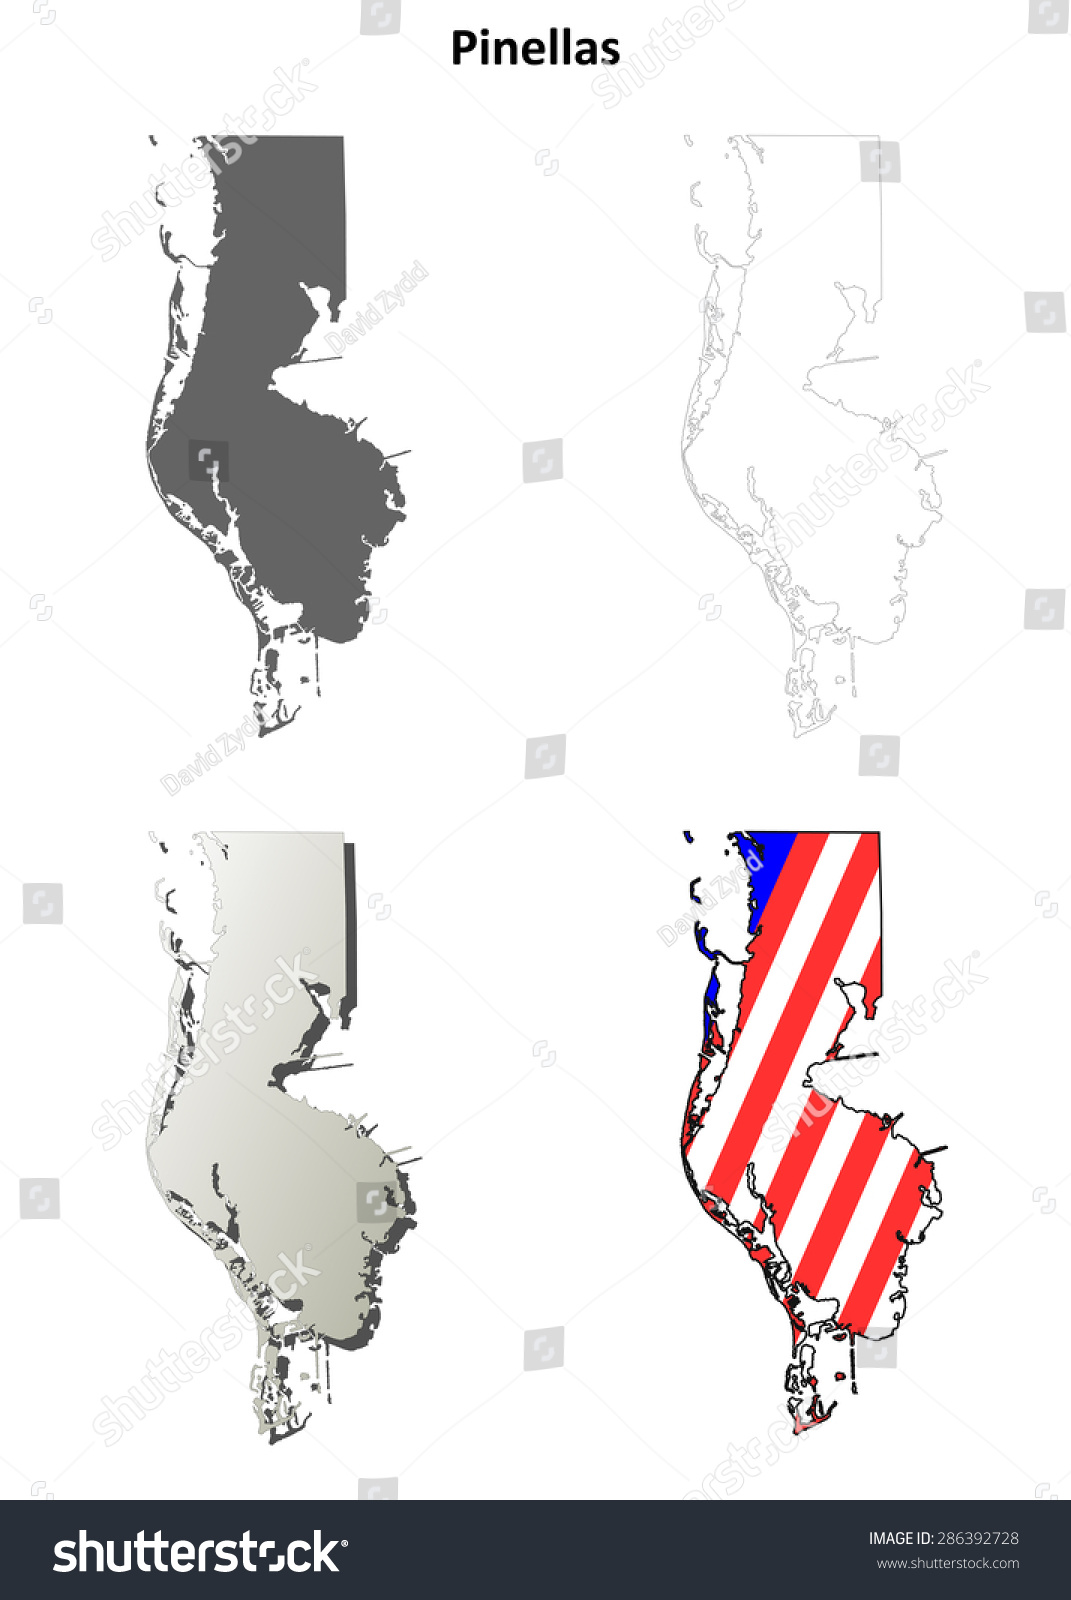 Pinellas County Map Florida.Pinellas County Florida Outline Map Set Stock Vector Royalty Free